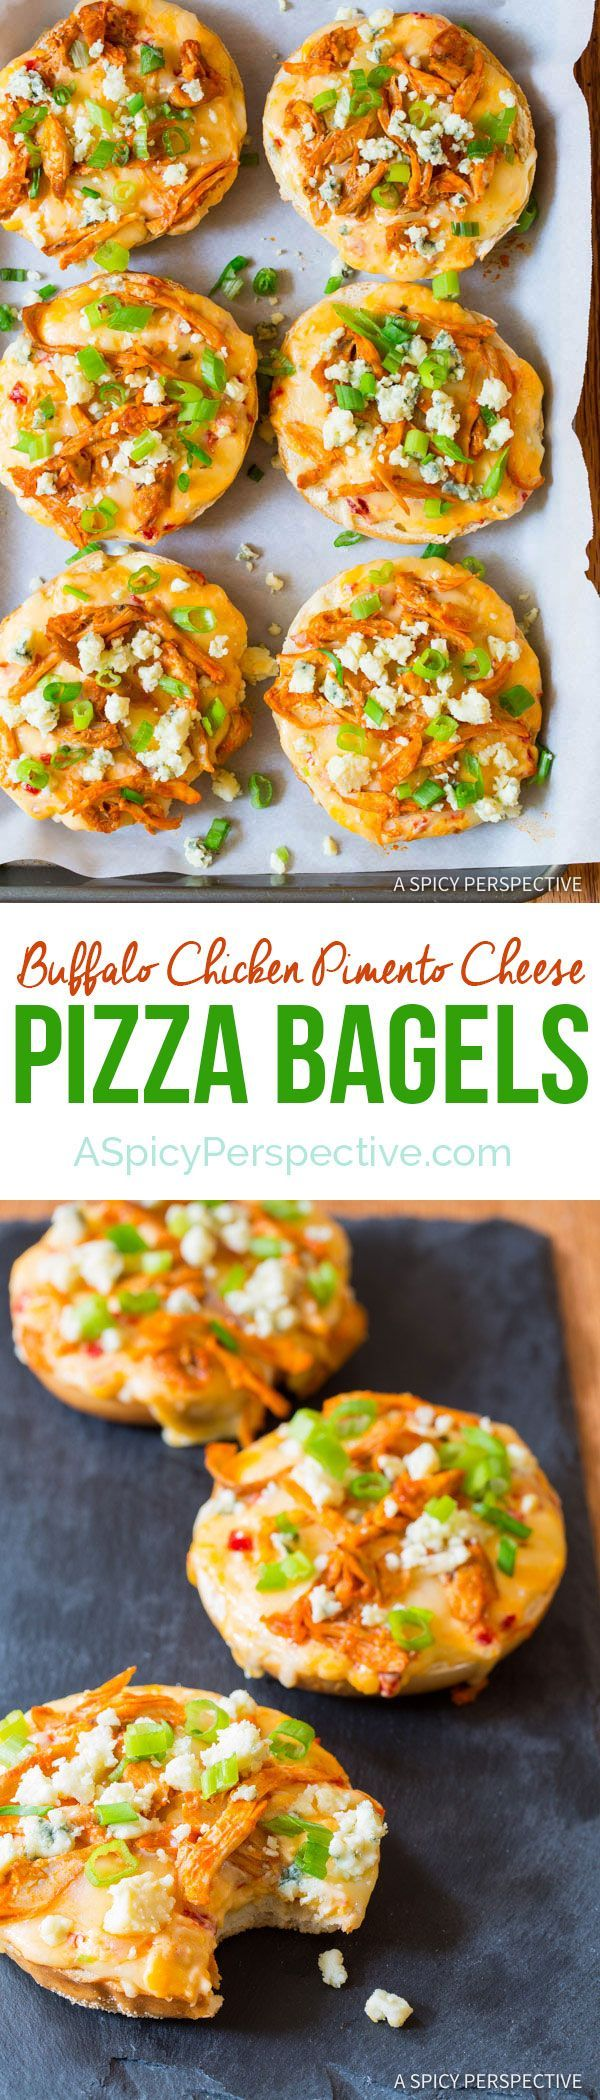 You've got to try these Buffalo Chicken Pimento Cheese Pizza Bagels on ASpicyPerspective.com. 7-Ingredients, Loads of Flavor!